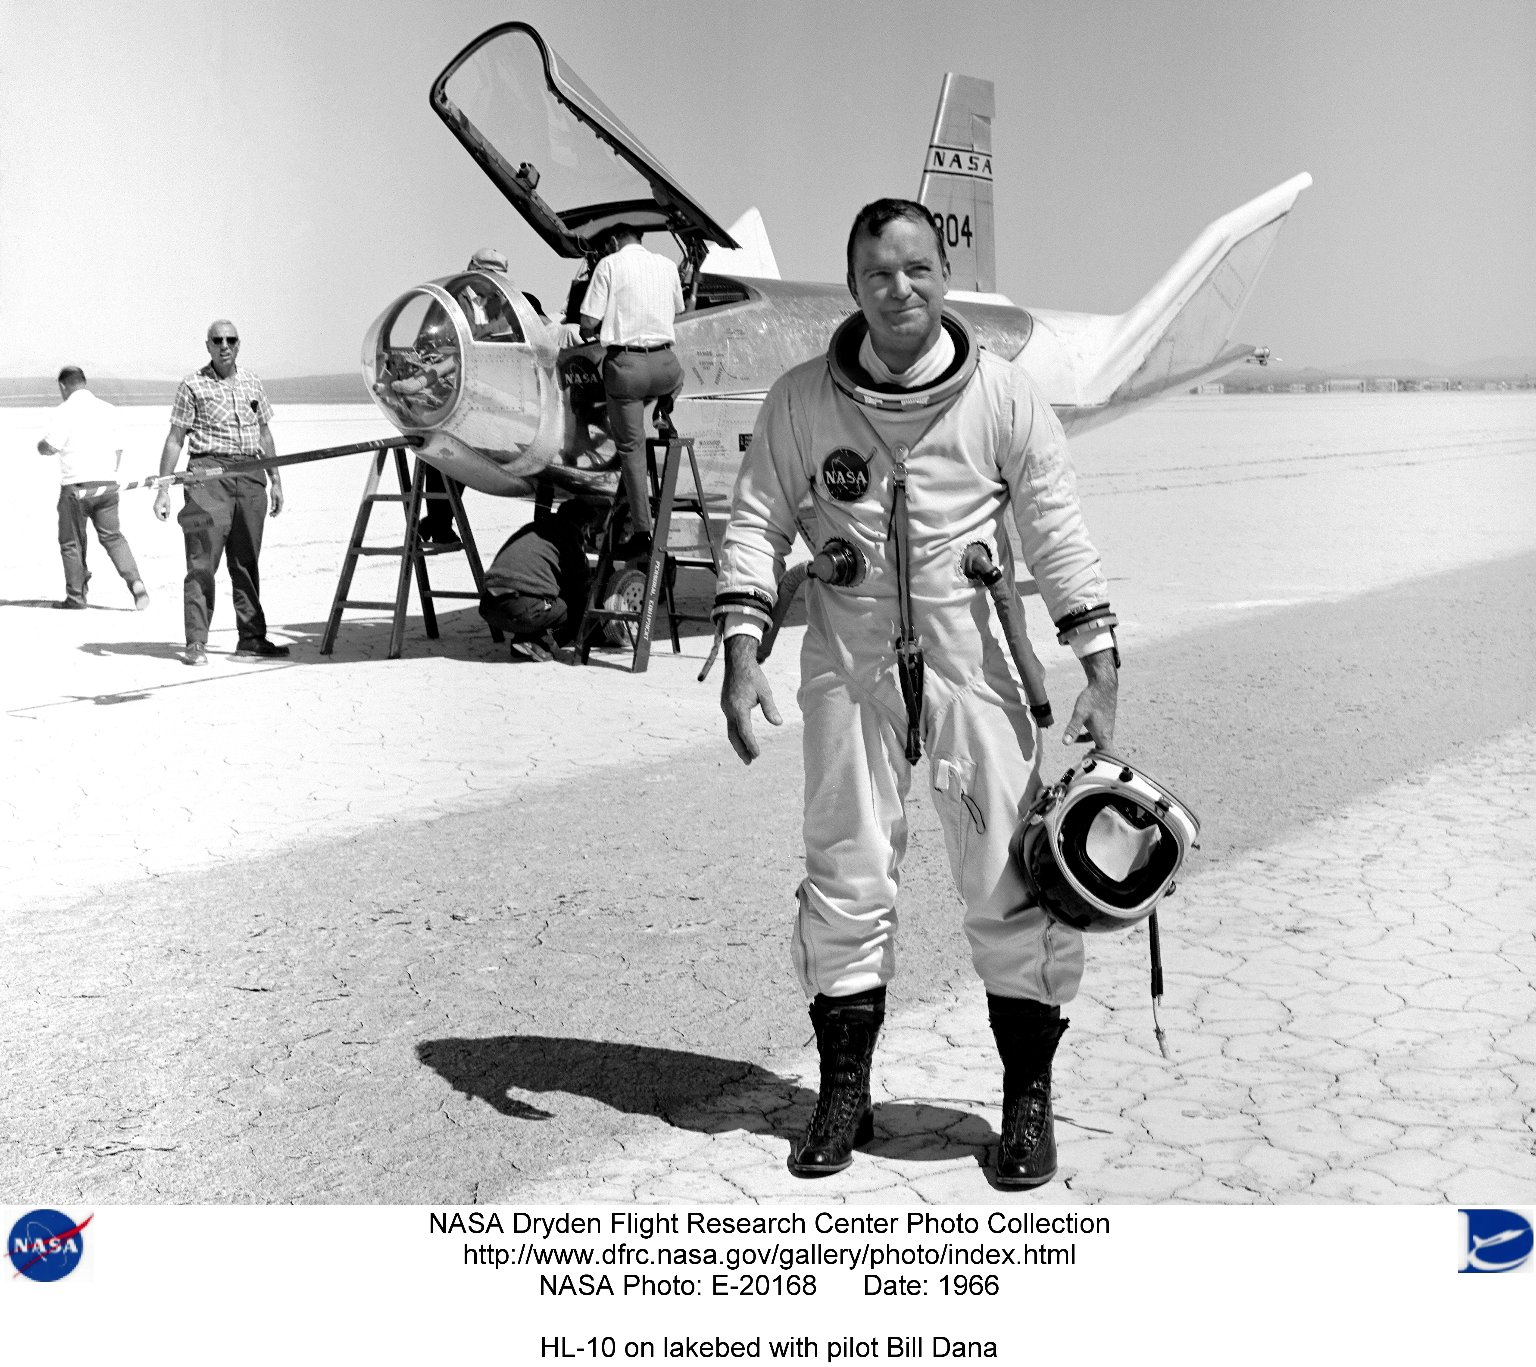 HL-10 on lakebed with pilot Bill Dana